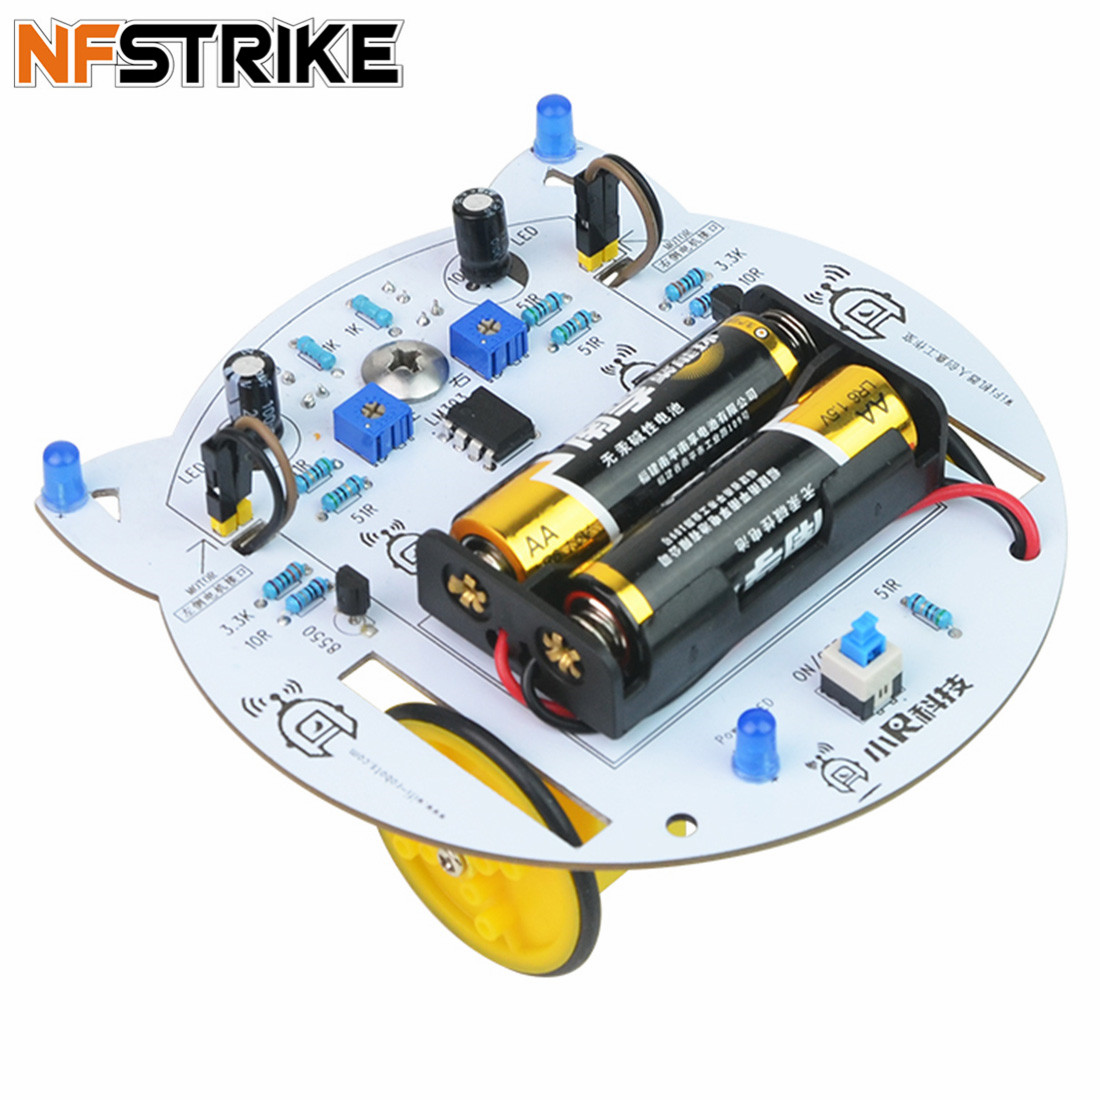 NFSTRIKE Mini Cat DIY Smart RC Robot Car Tracking STEAM Educational Kit Programmable Toys For Kids Boys - Without Battery